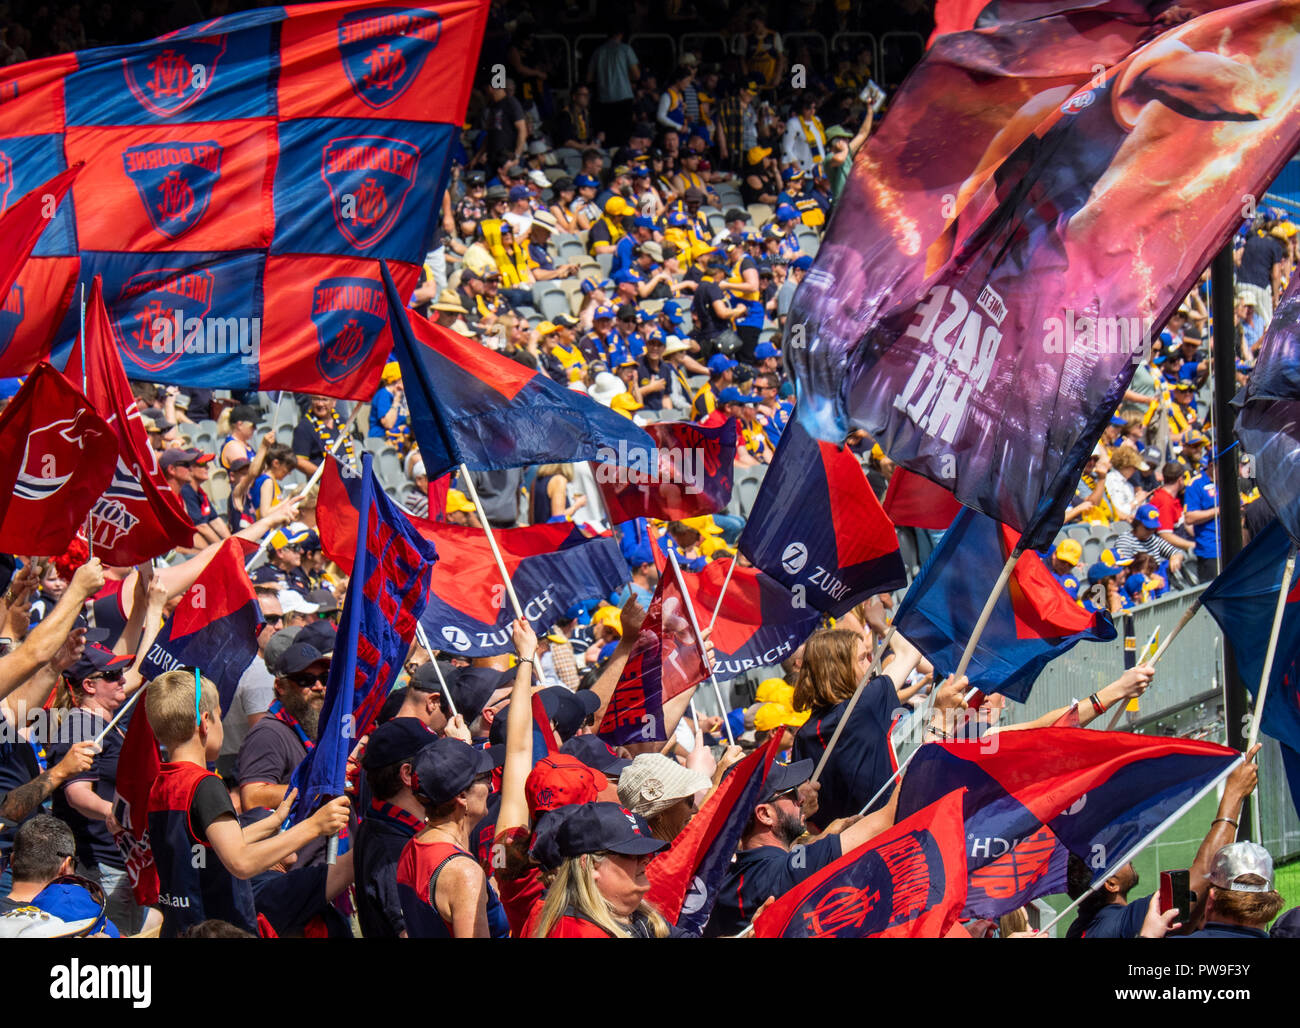 Melbourne Demons Football Club cheer squad waving flags and banners at Optus Stadium 2018 AFL Preliminary Final Perth Western Australia. - Stock Image